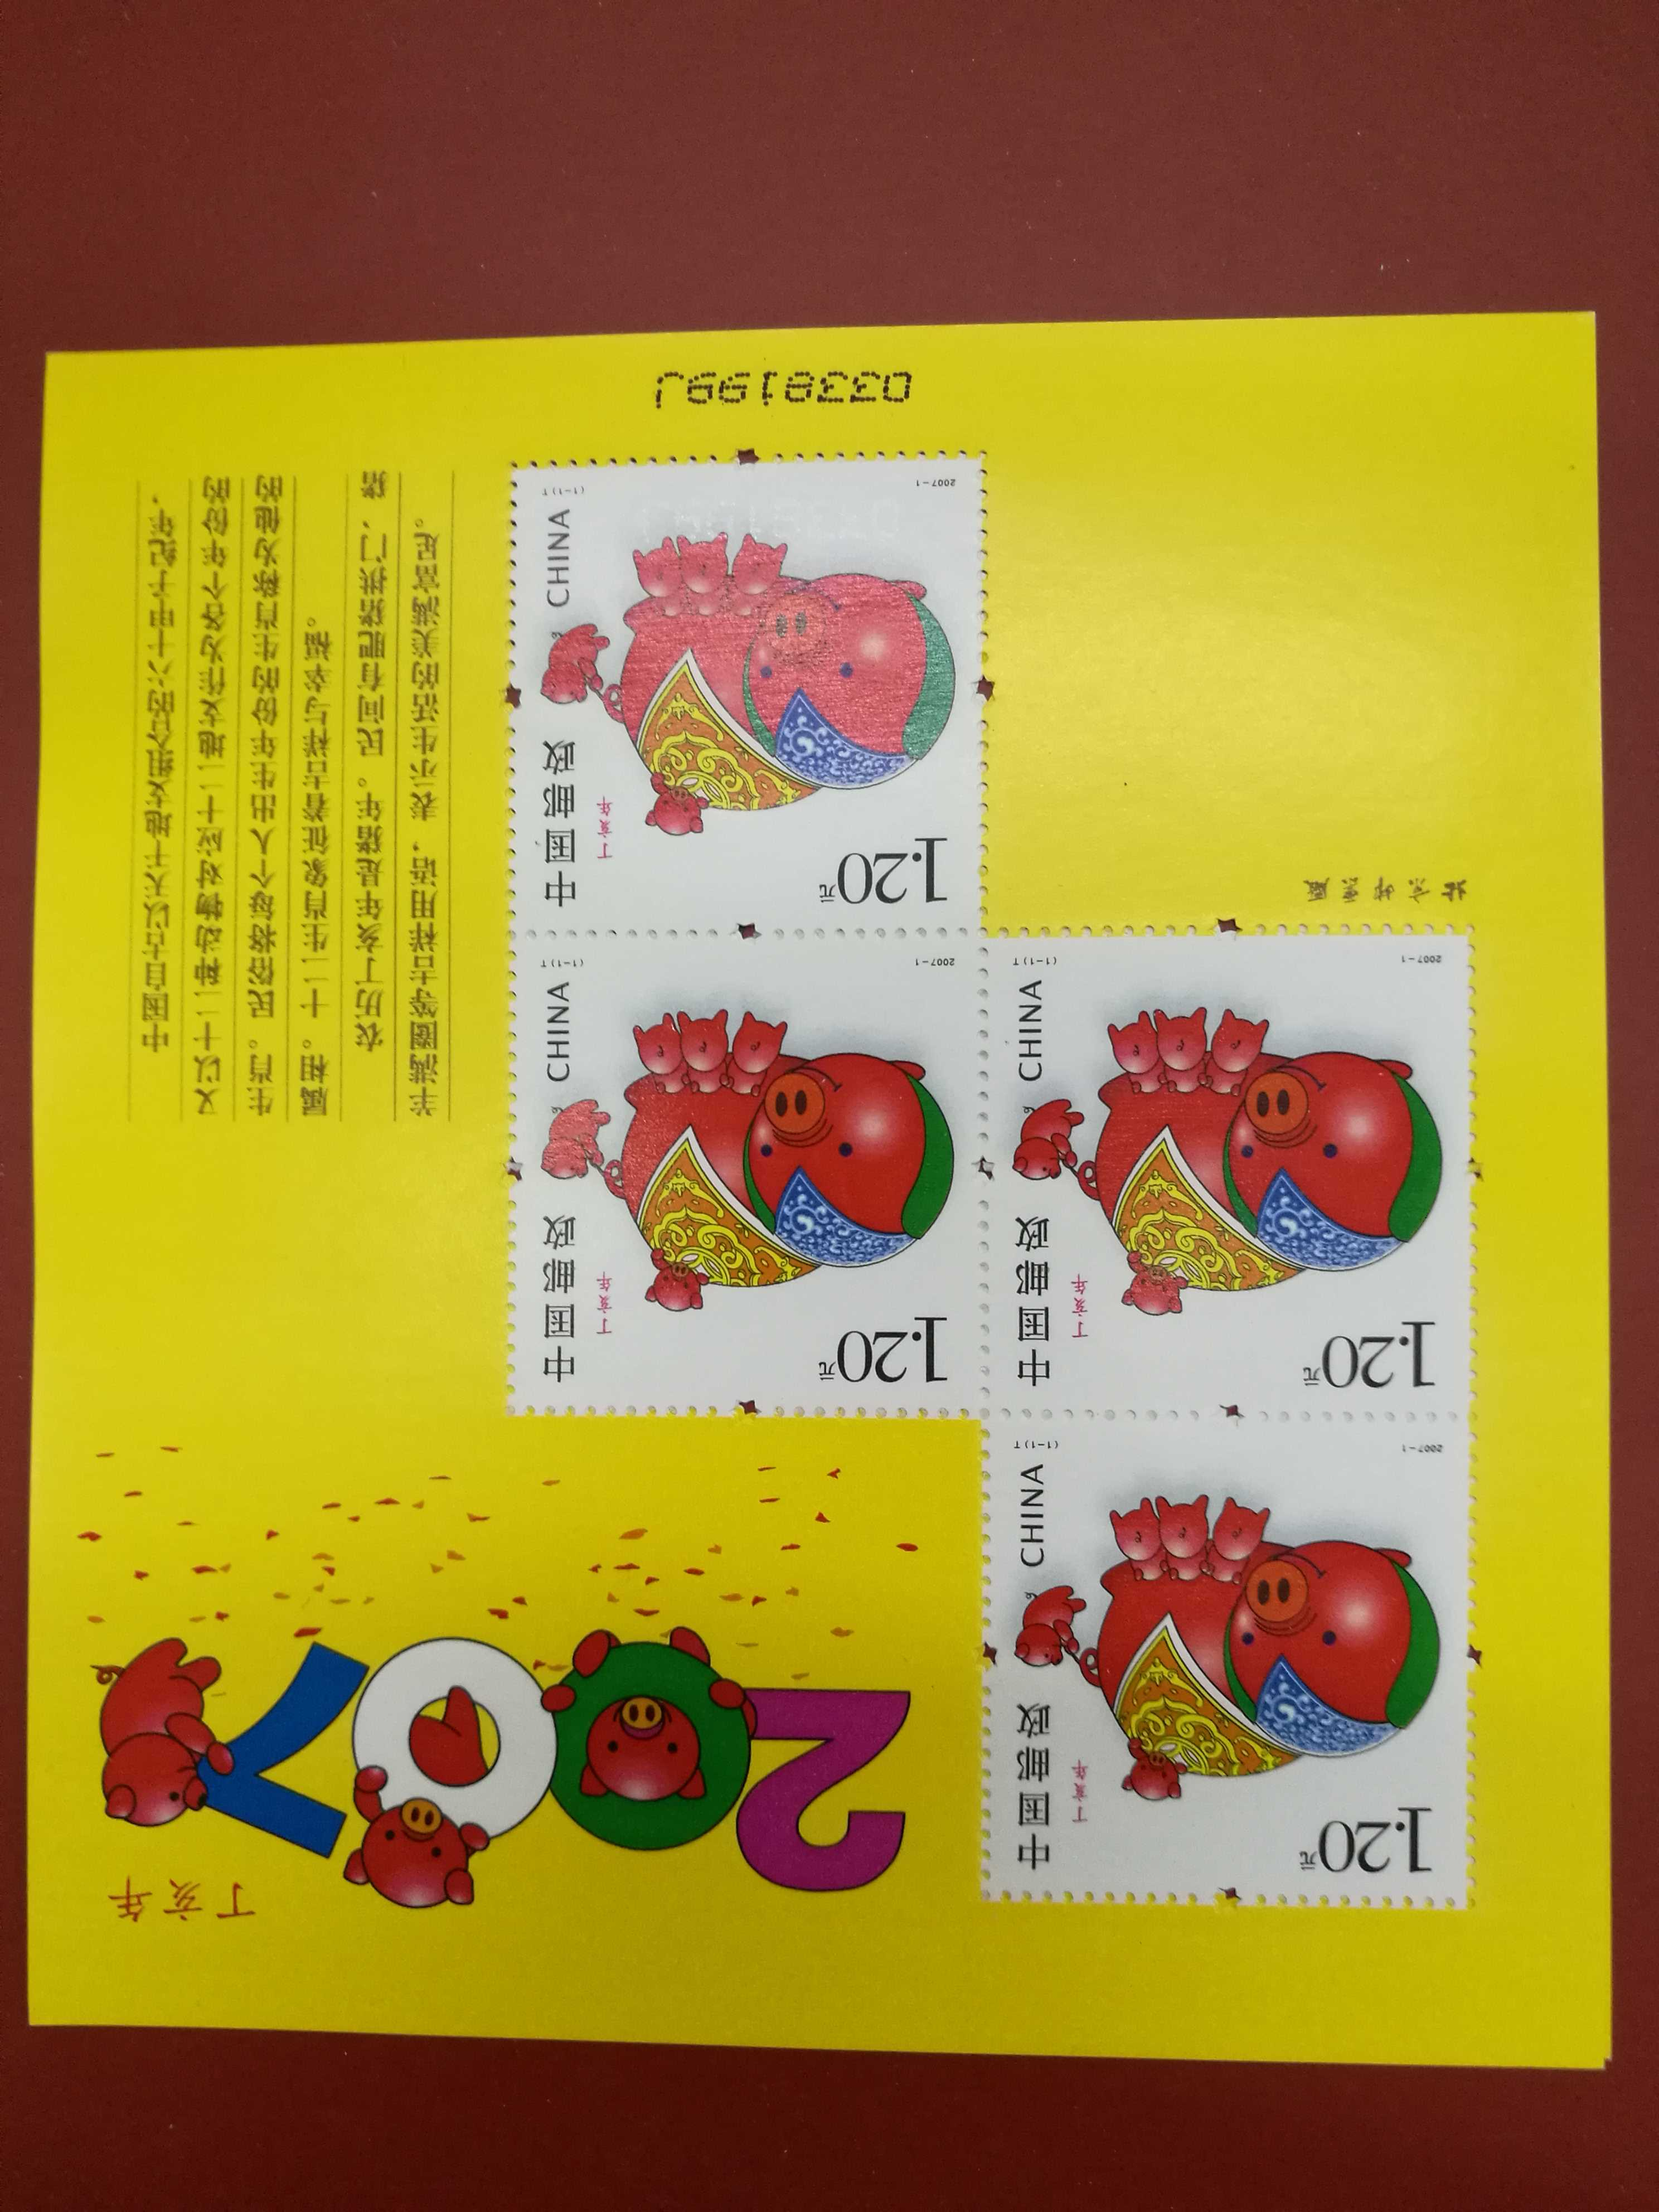 2007-11 three rounds of Chinese Zodiac pig gift edition three rounds of yellow pig stamps original glue authentic post office